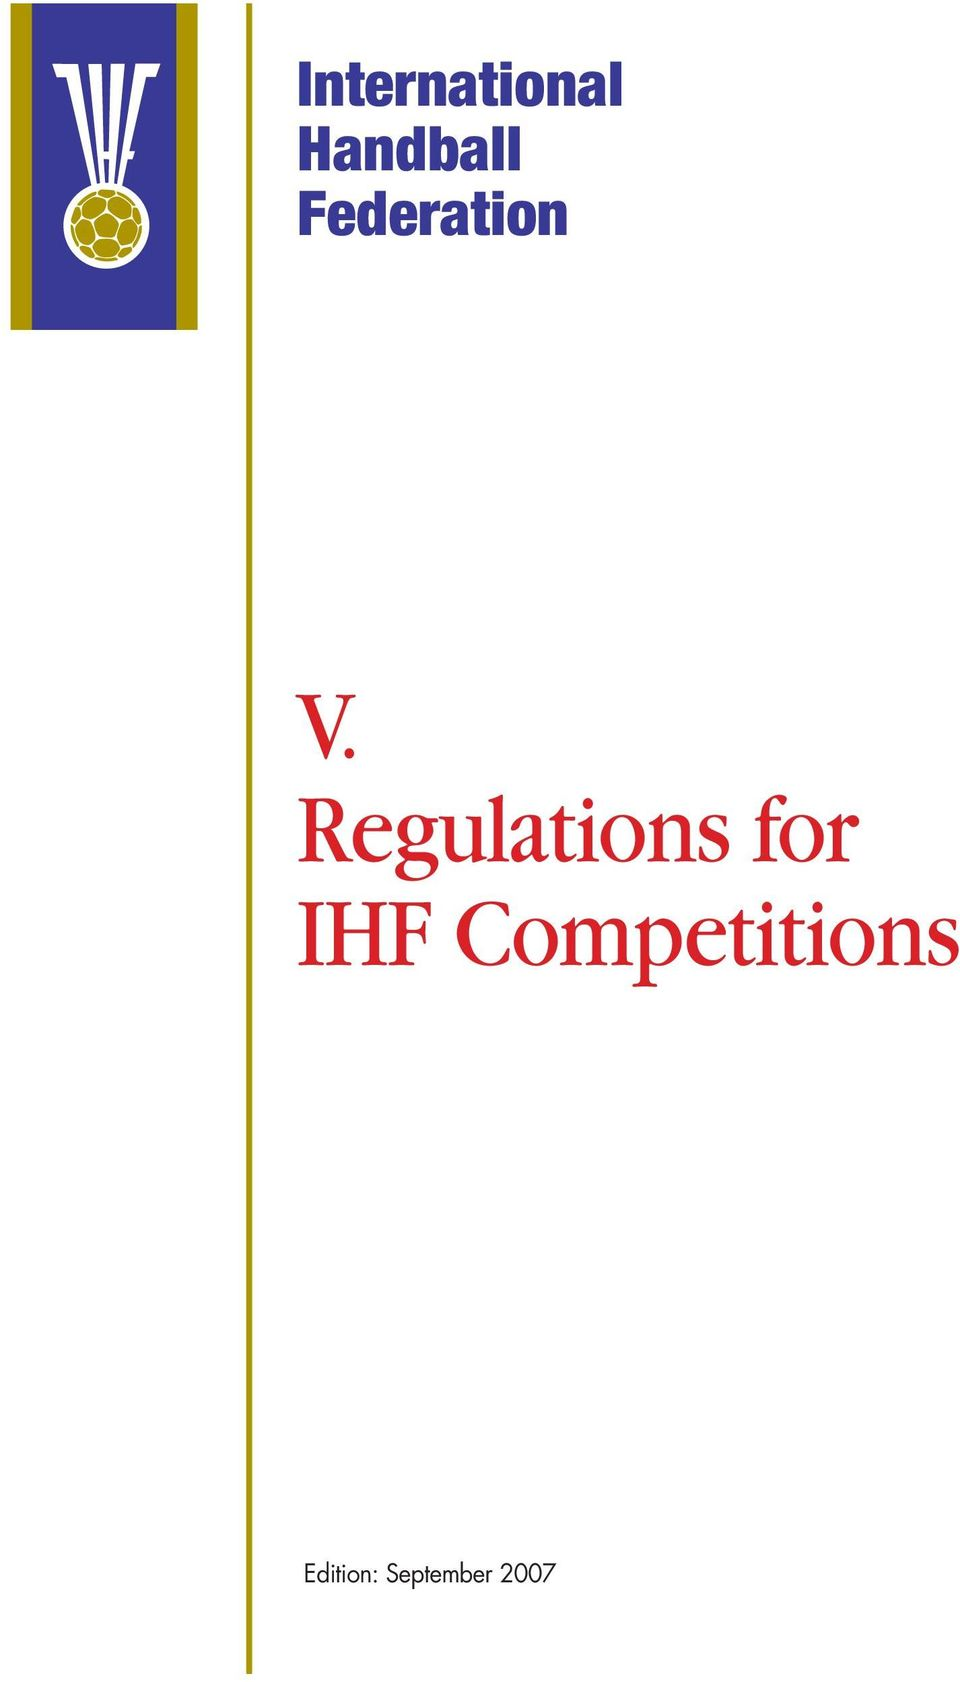 Regulations for IHF